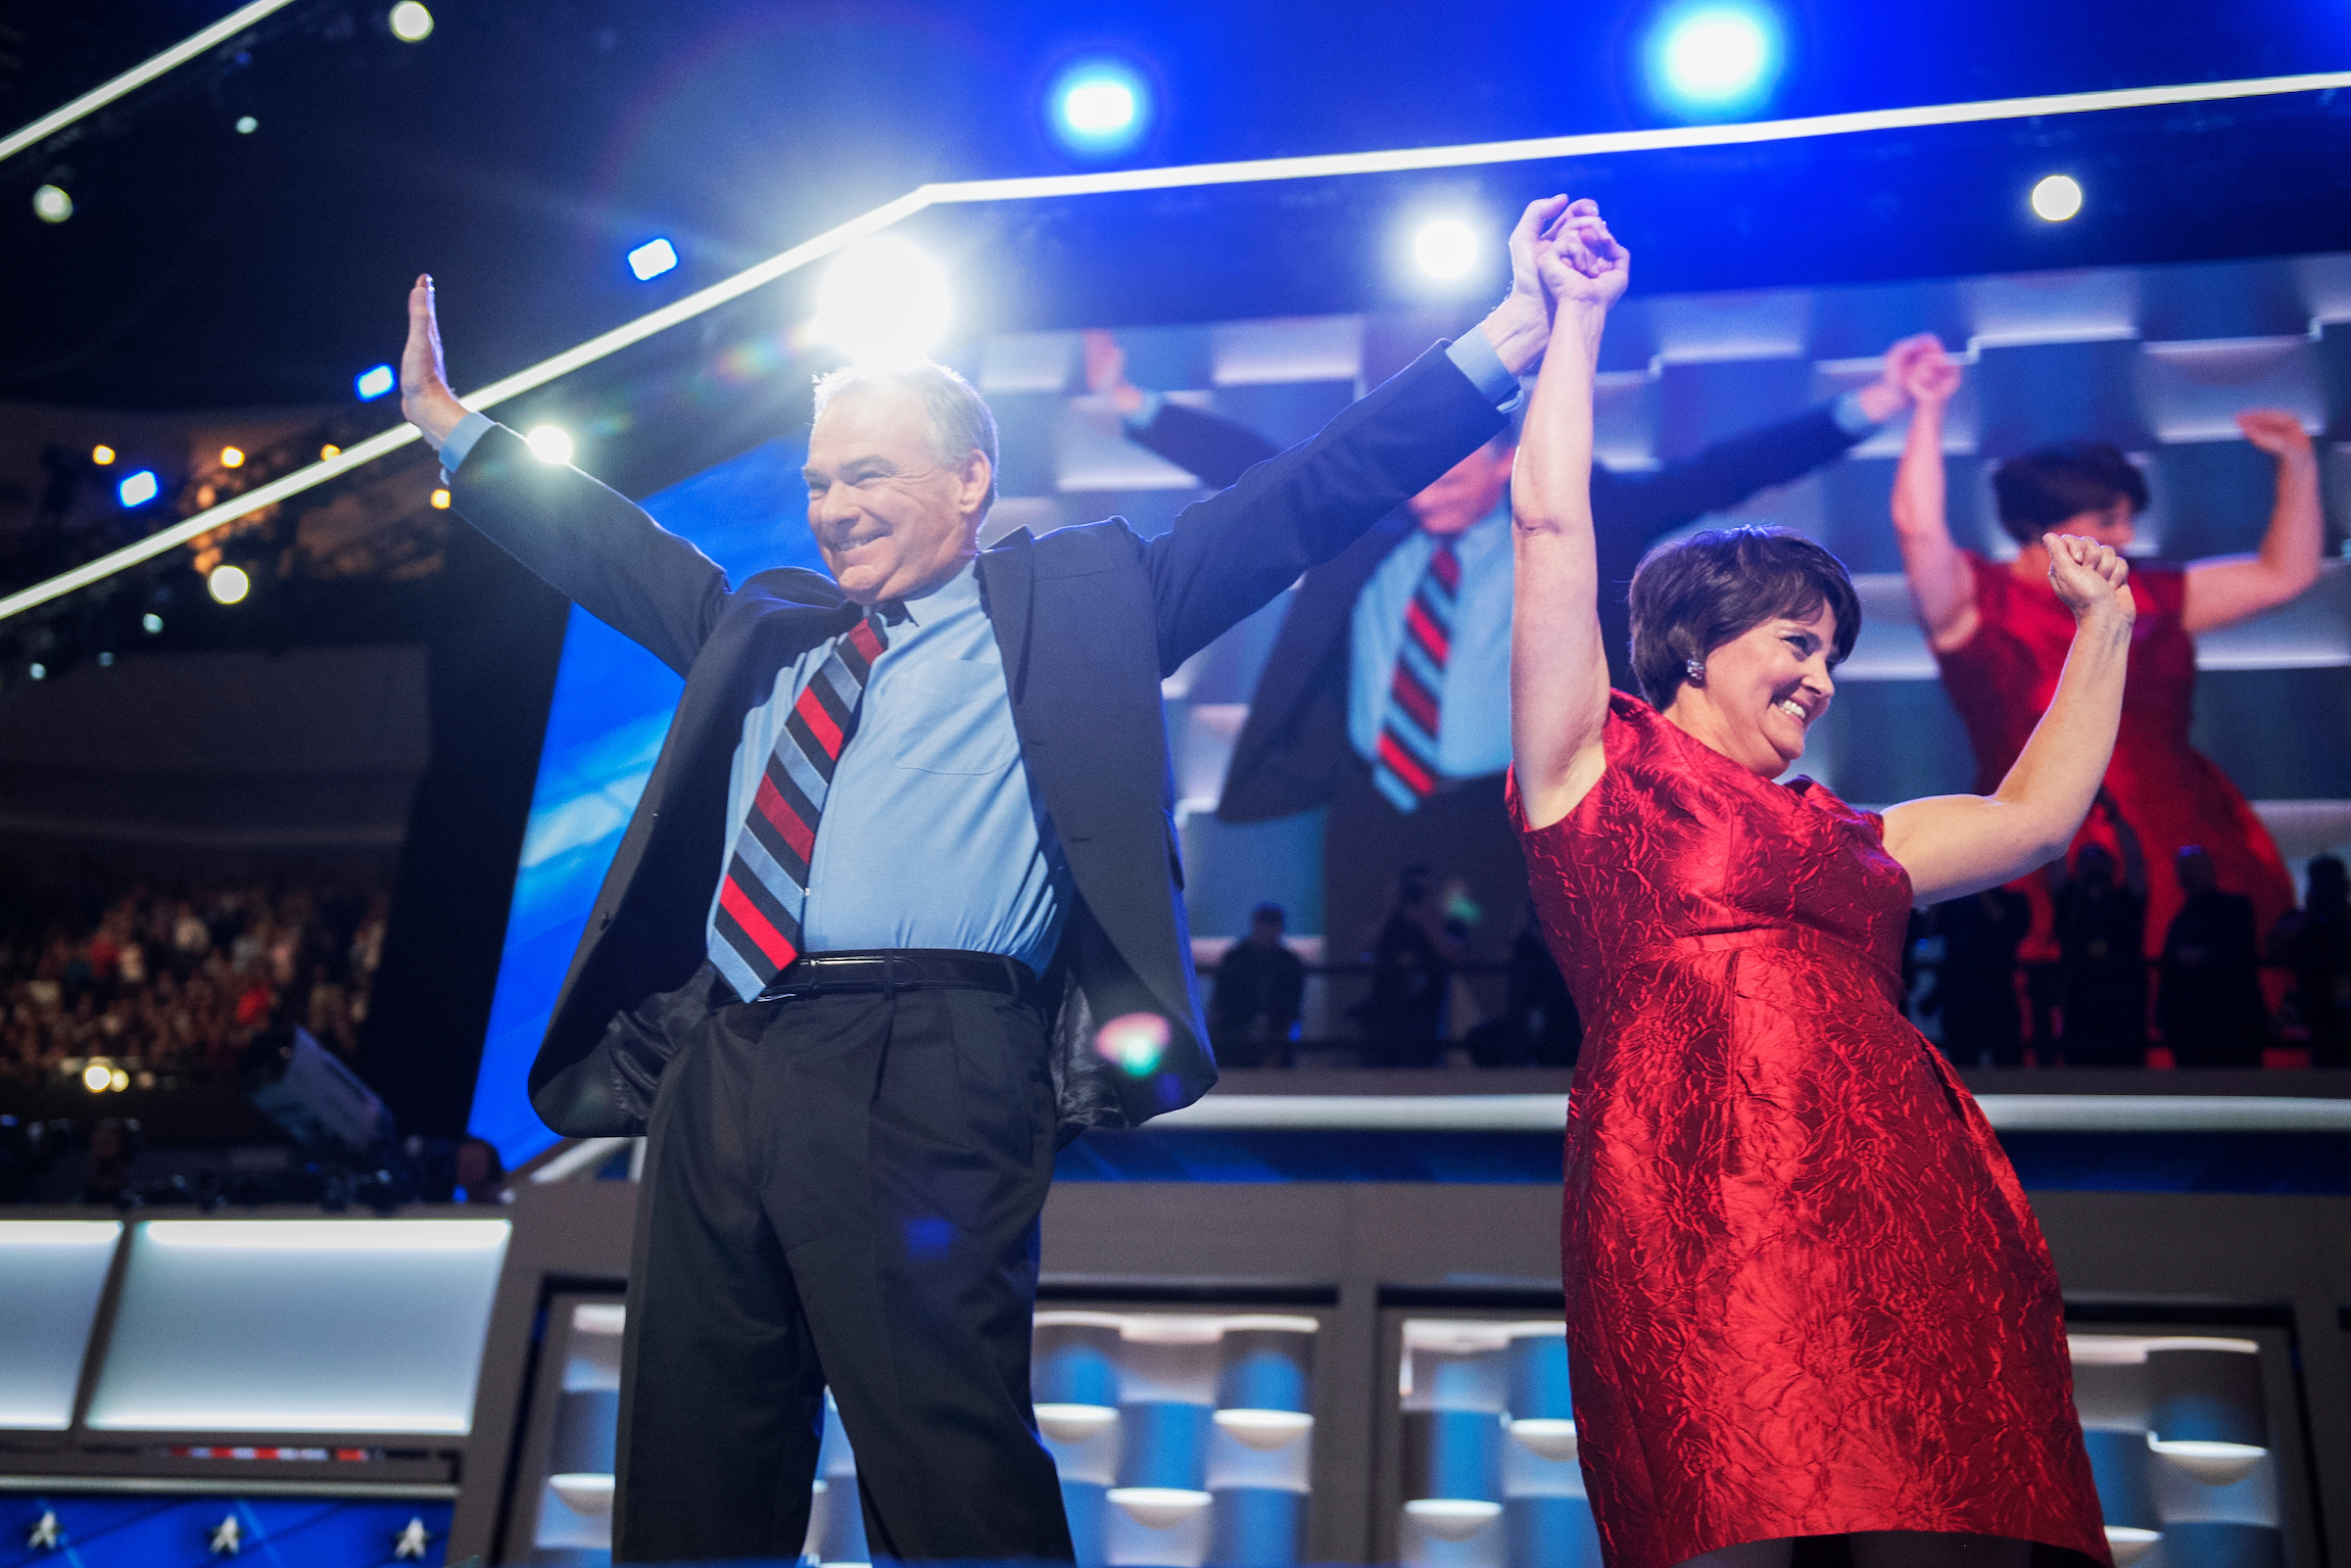 Democratic vice presidential nominee Tim Kaine and his wife Anne Holton acknowledge the crowd after Kaine addressed the convention Wednesday. (Tom Williams/CQ Roll Call)